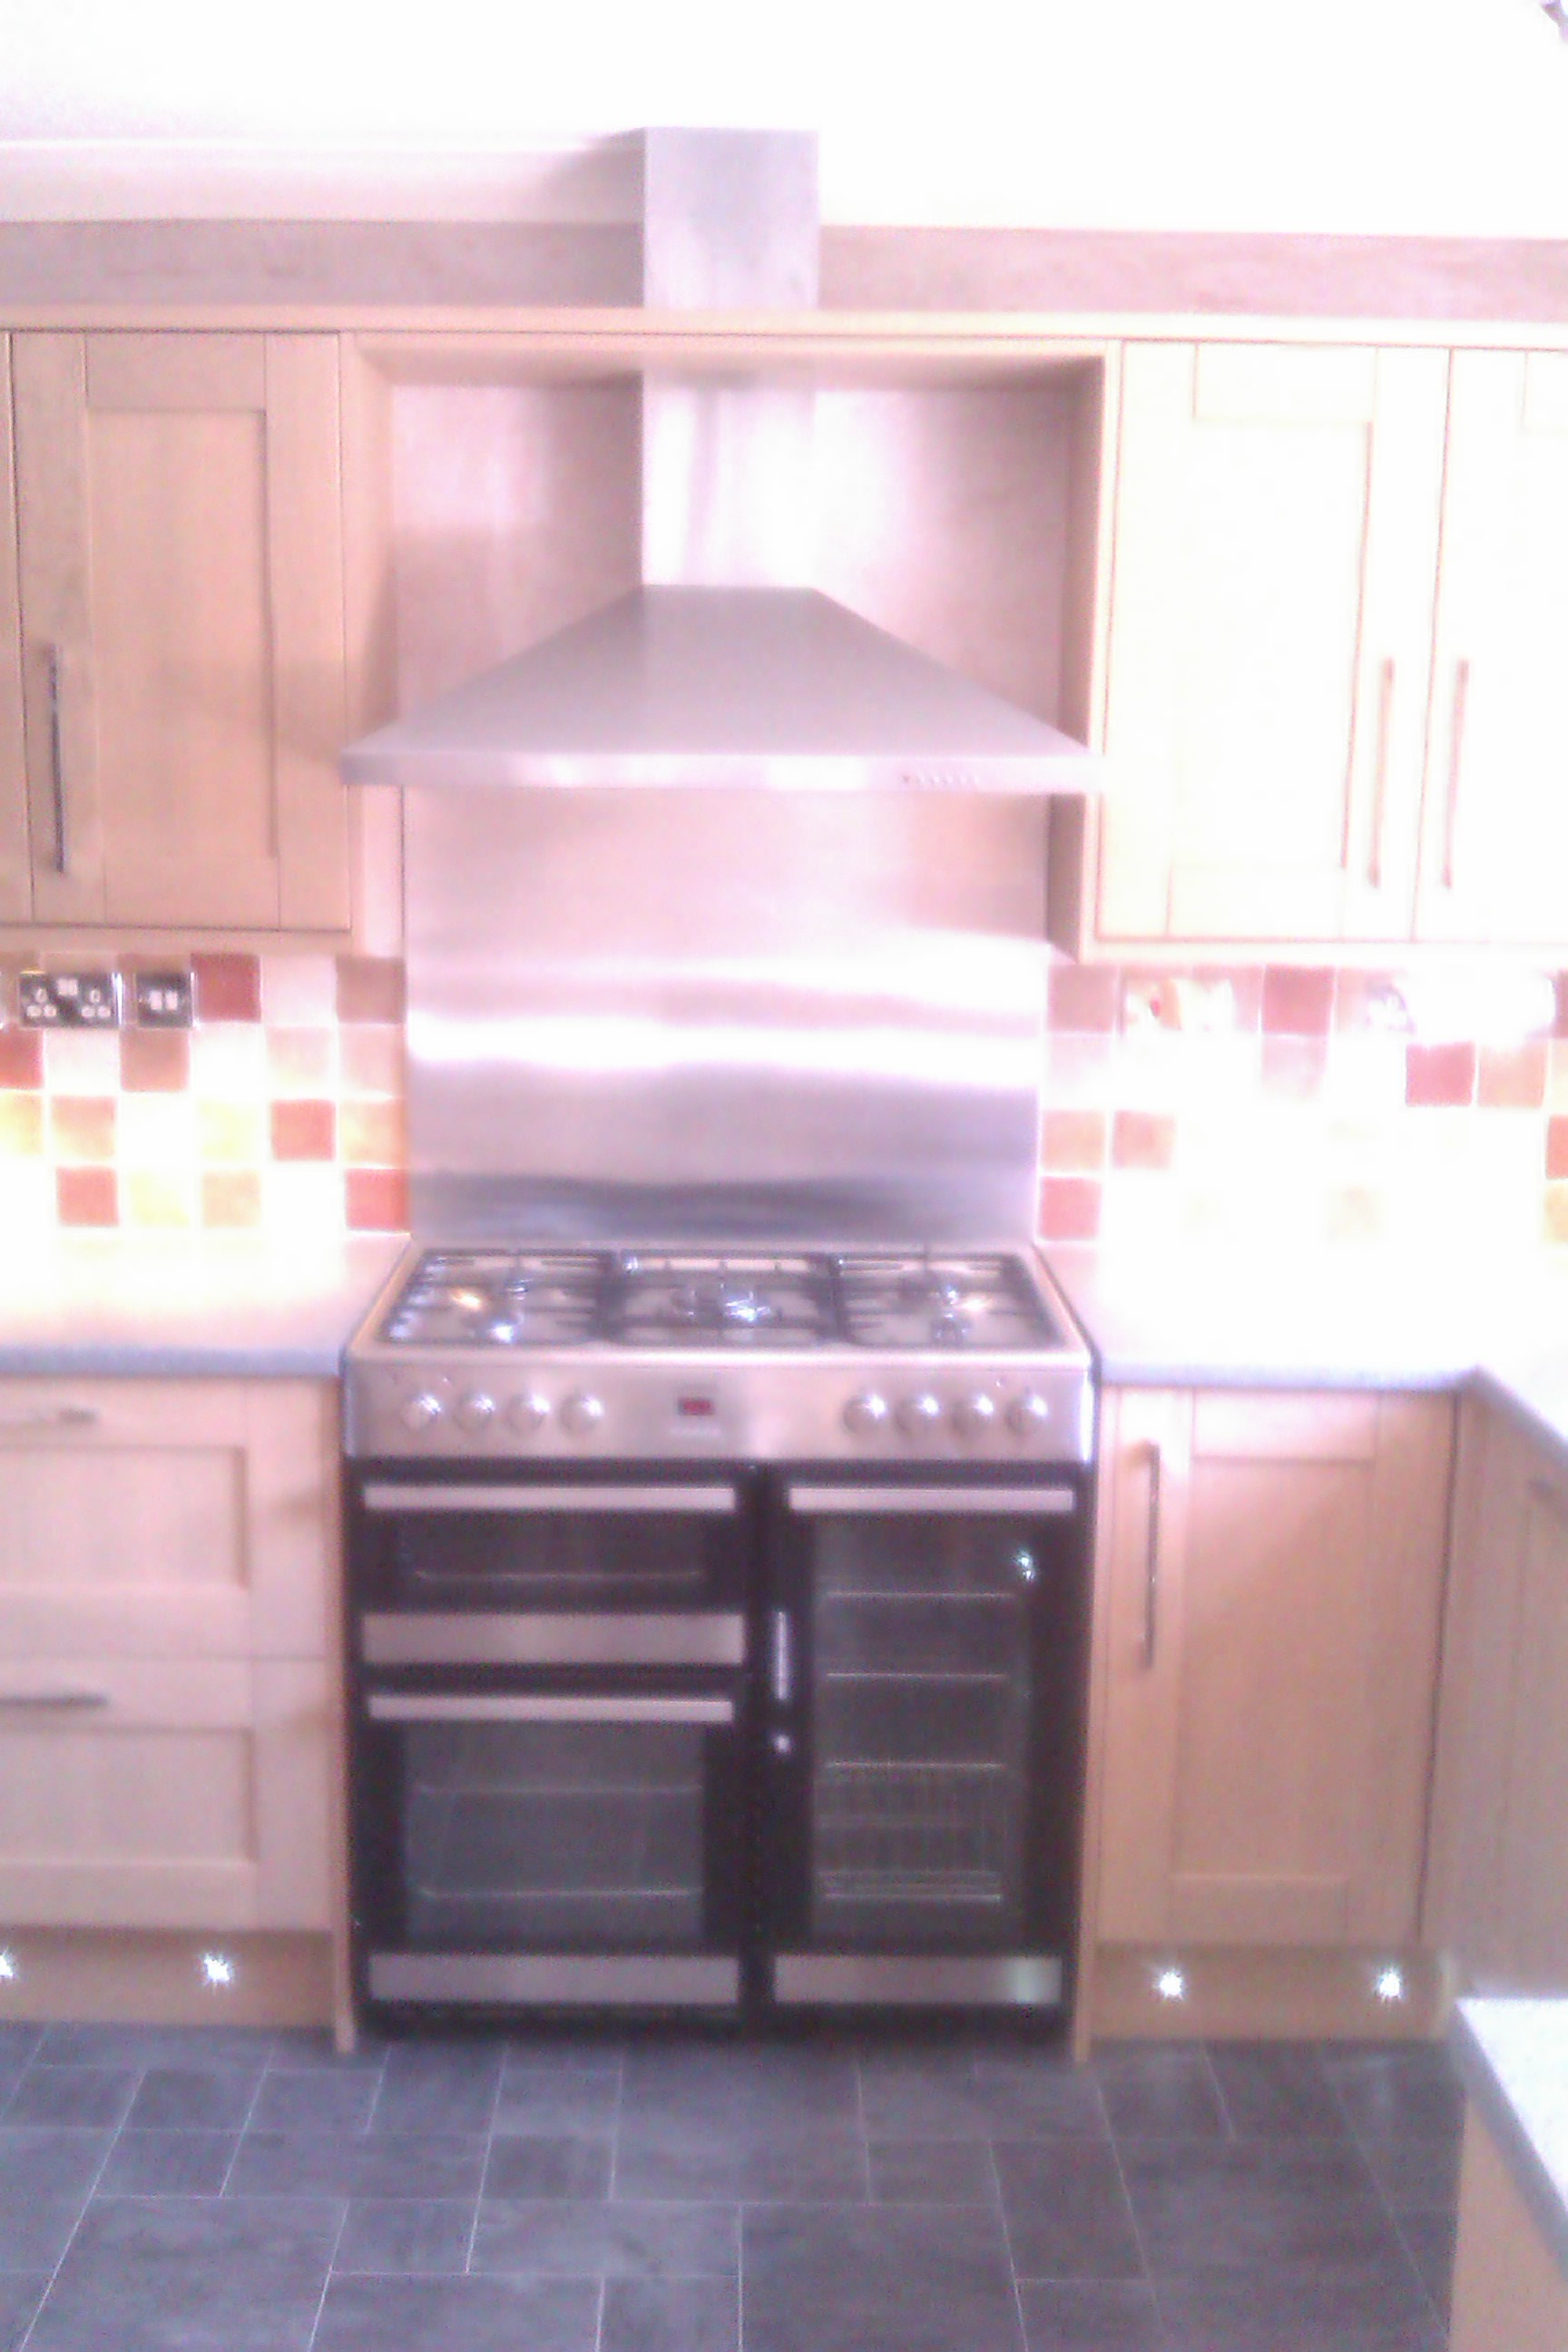 Stainless Steel Splashback Howdens Lamona 900mm Wide Oven With Stainless Steel Splashback